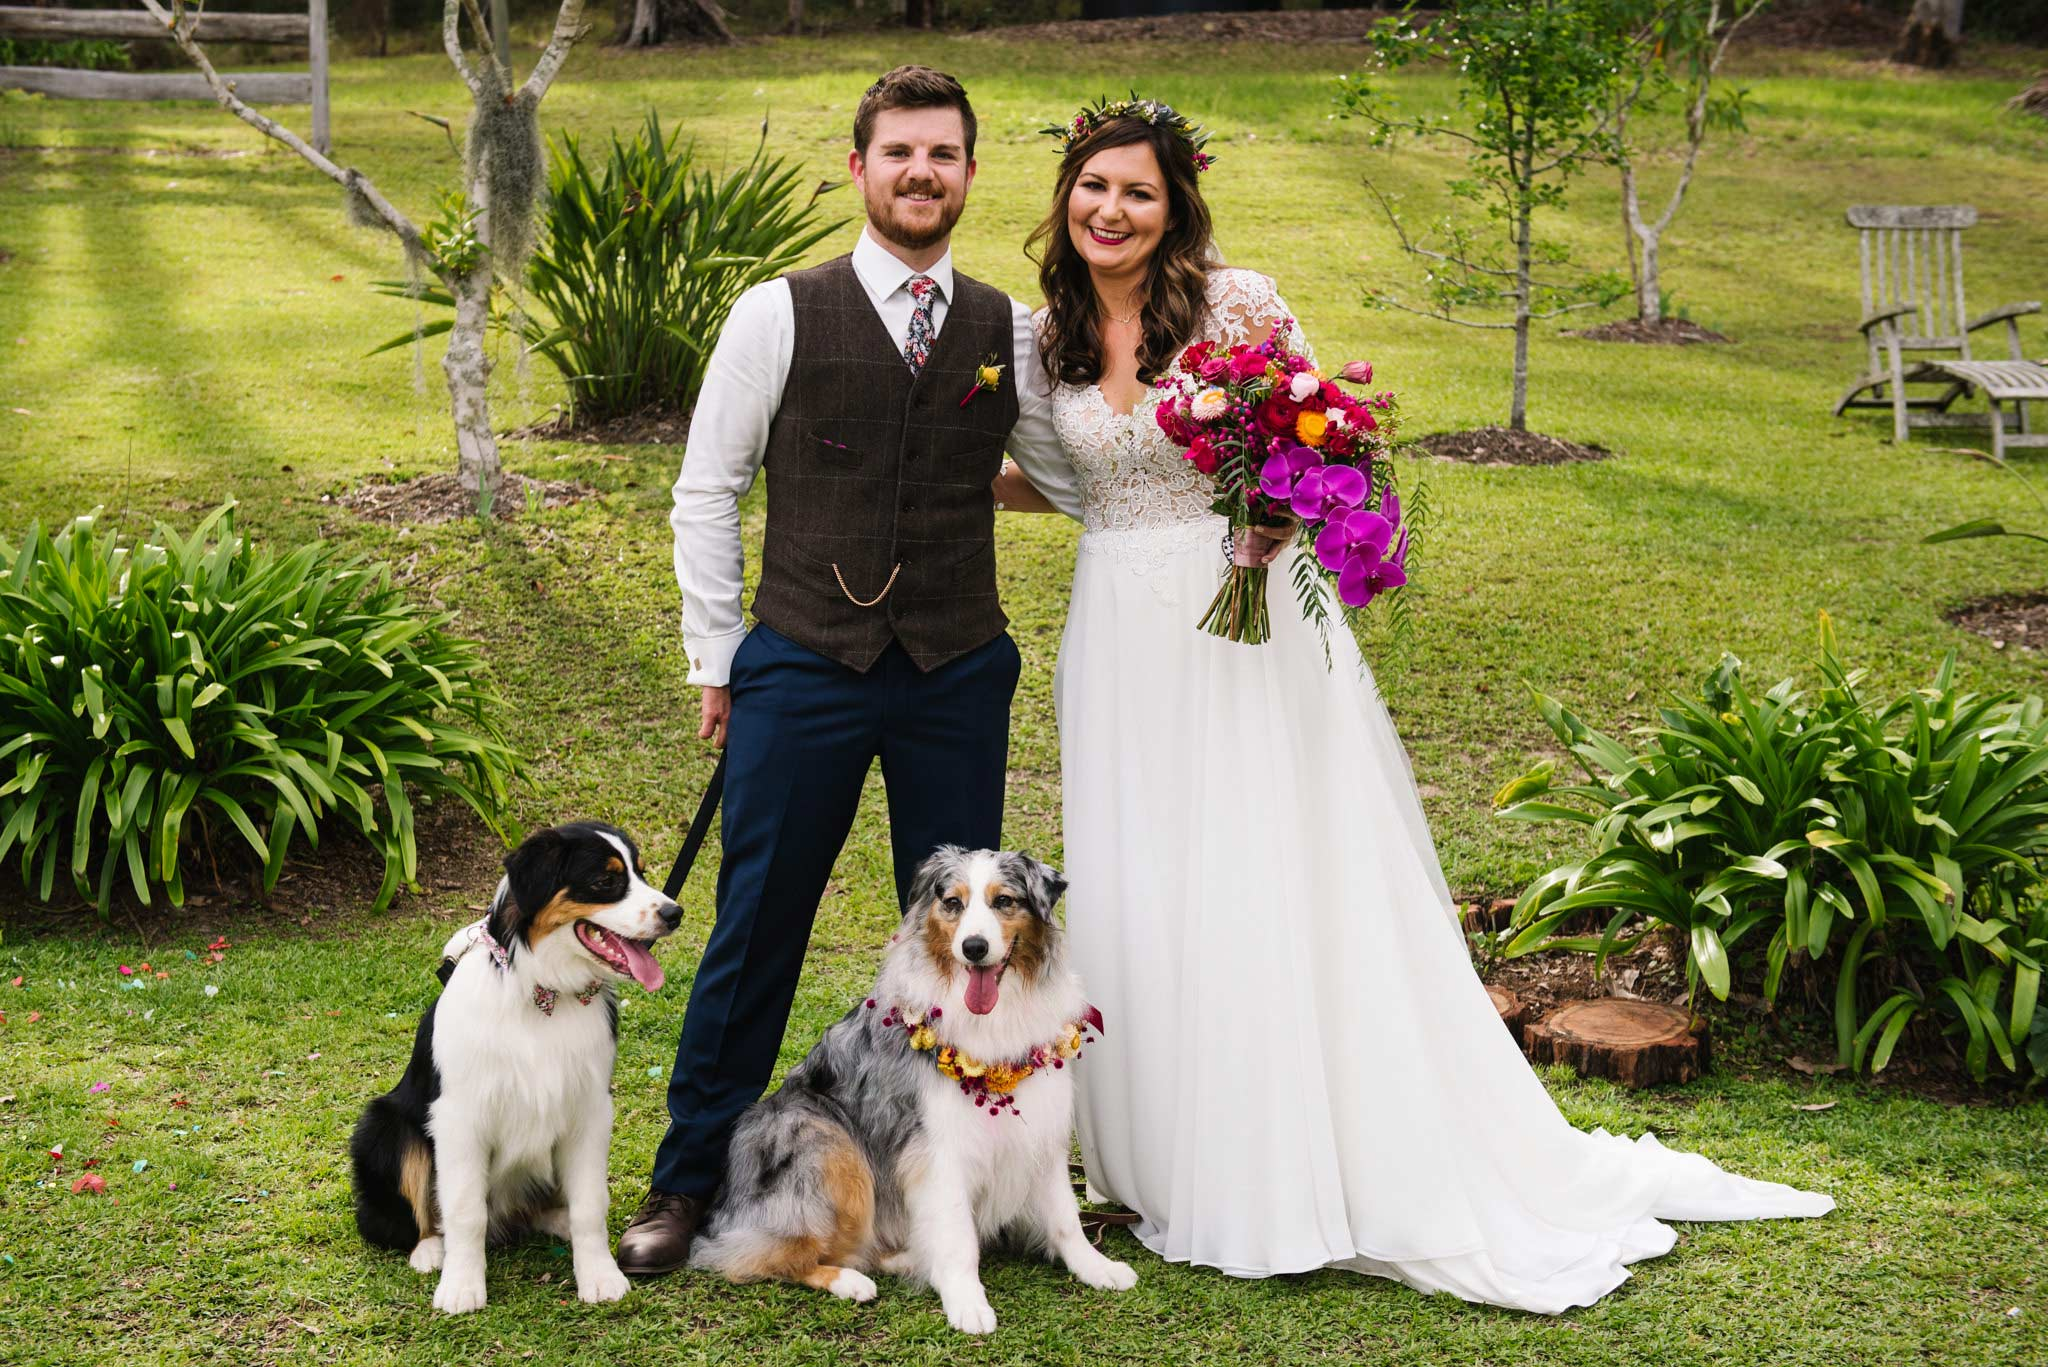 Two dogs with floral wreaths act as ring bearers